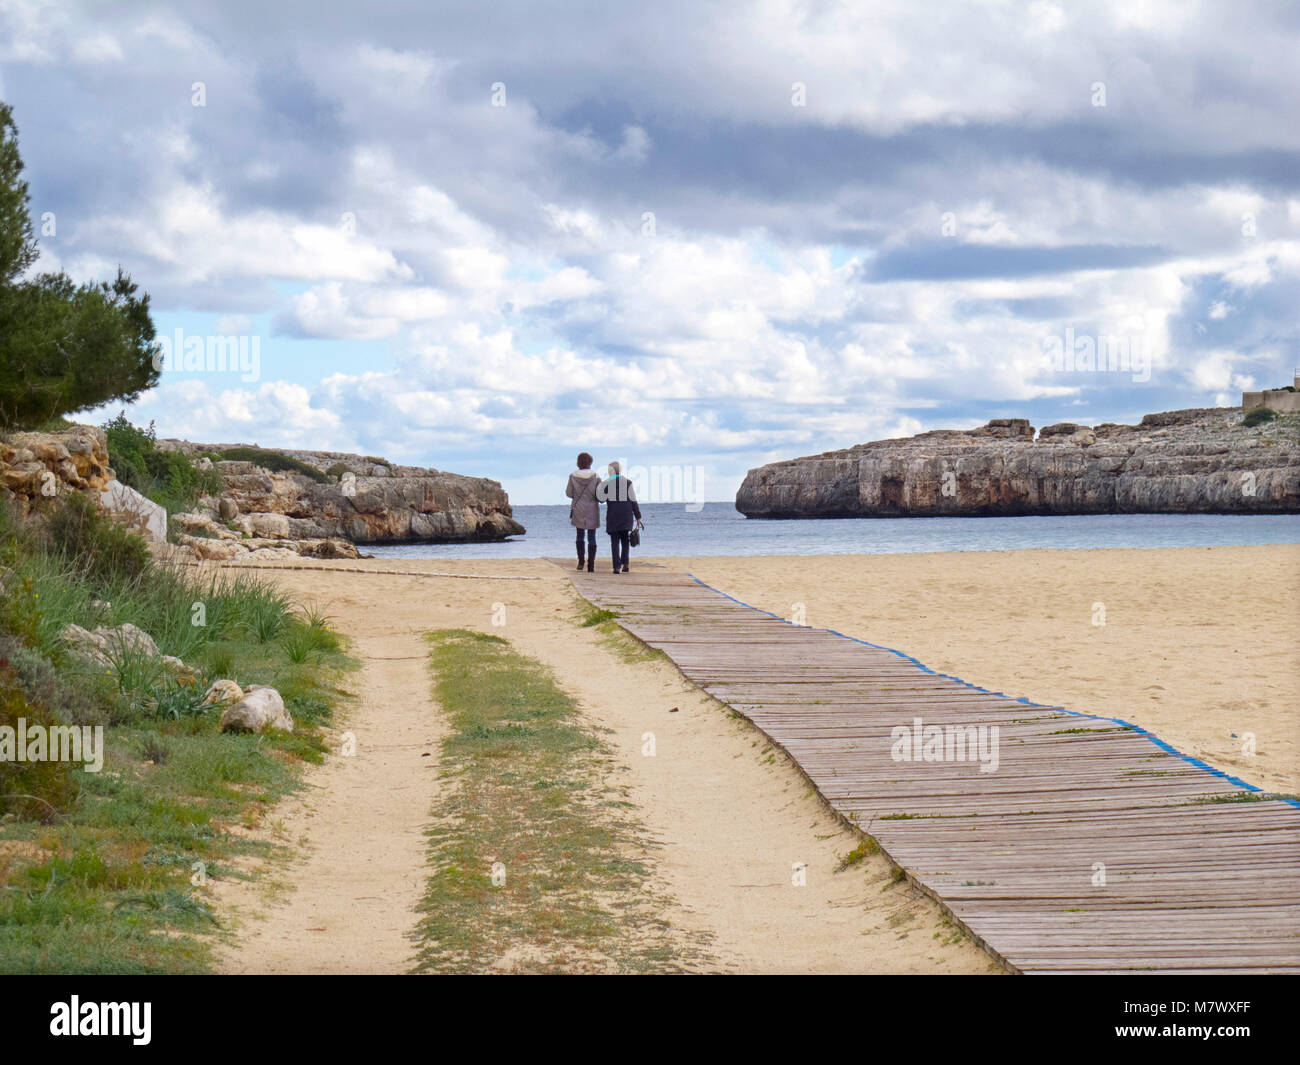 Two elderly people standing on board walk looking out to sea - Stock Image